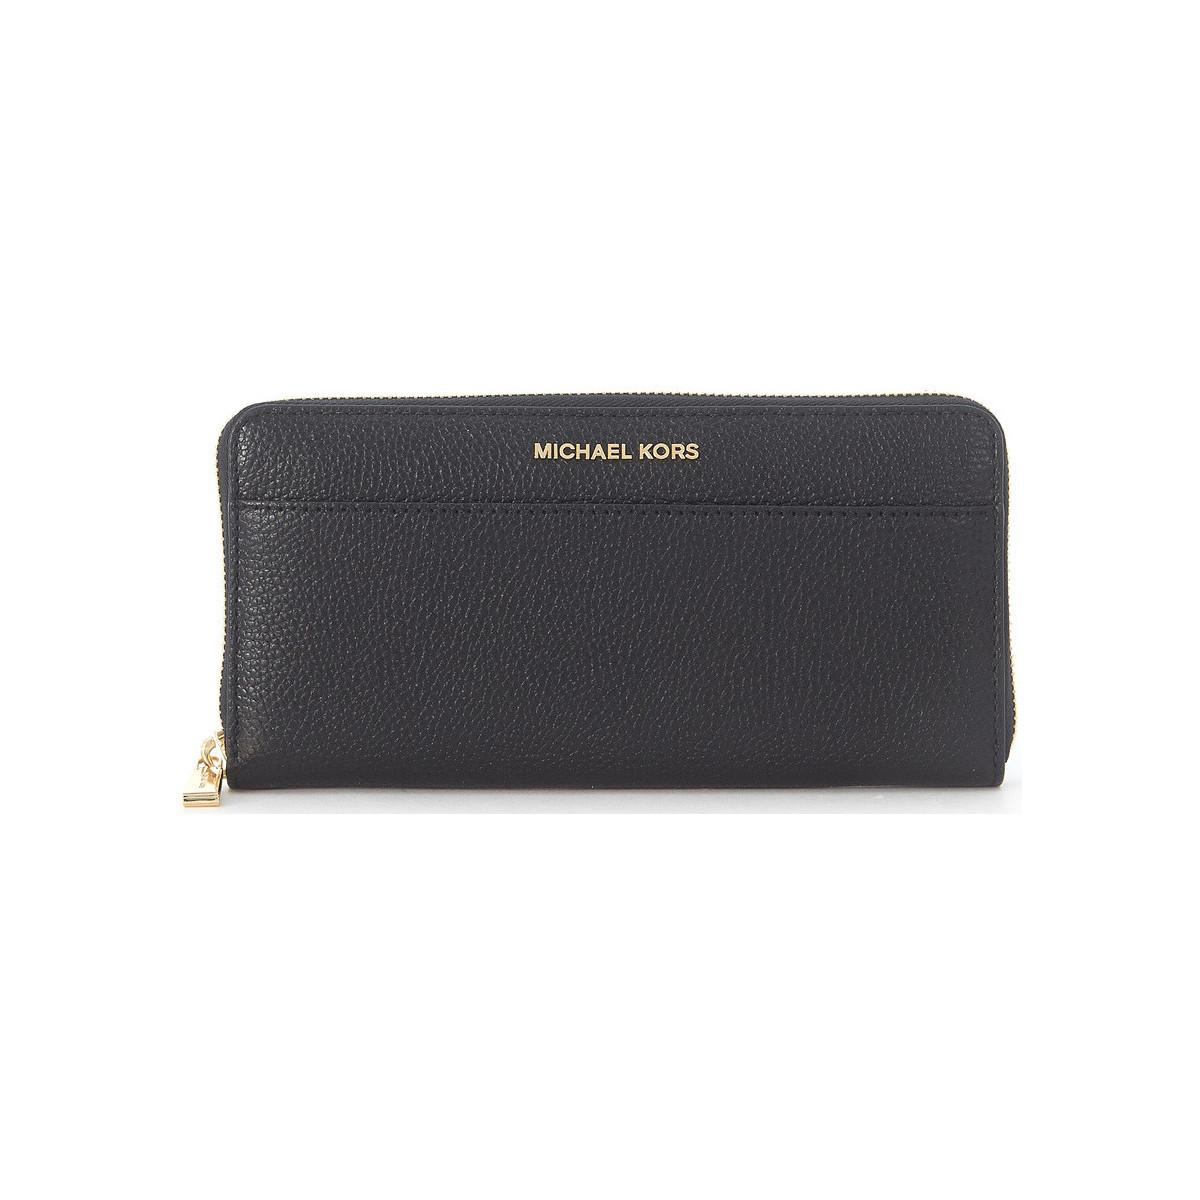 3a54d8b20b17 MICHAEL Michael Kors. Mercer Black Saffiano Leather Wallet Women's ...